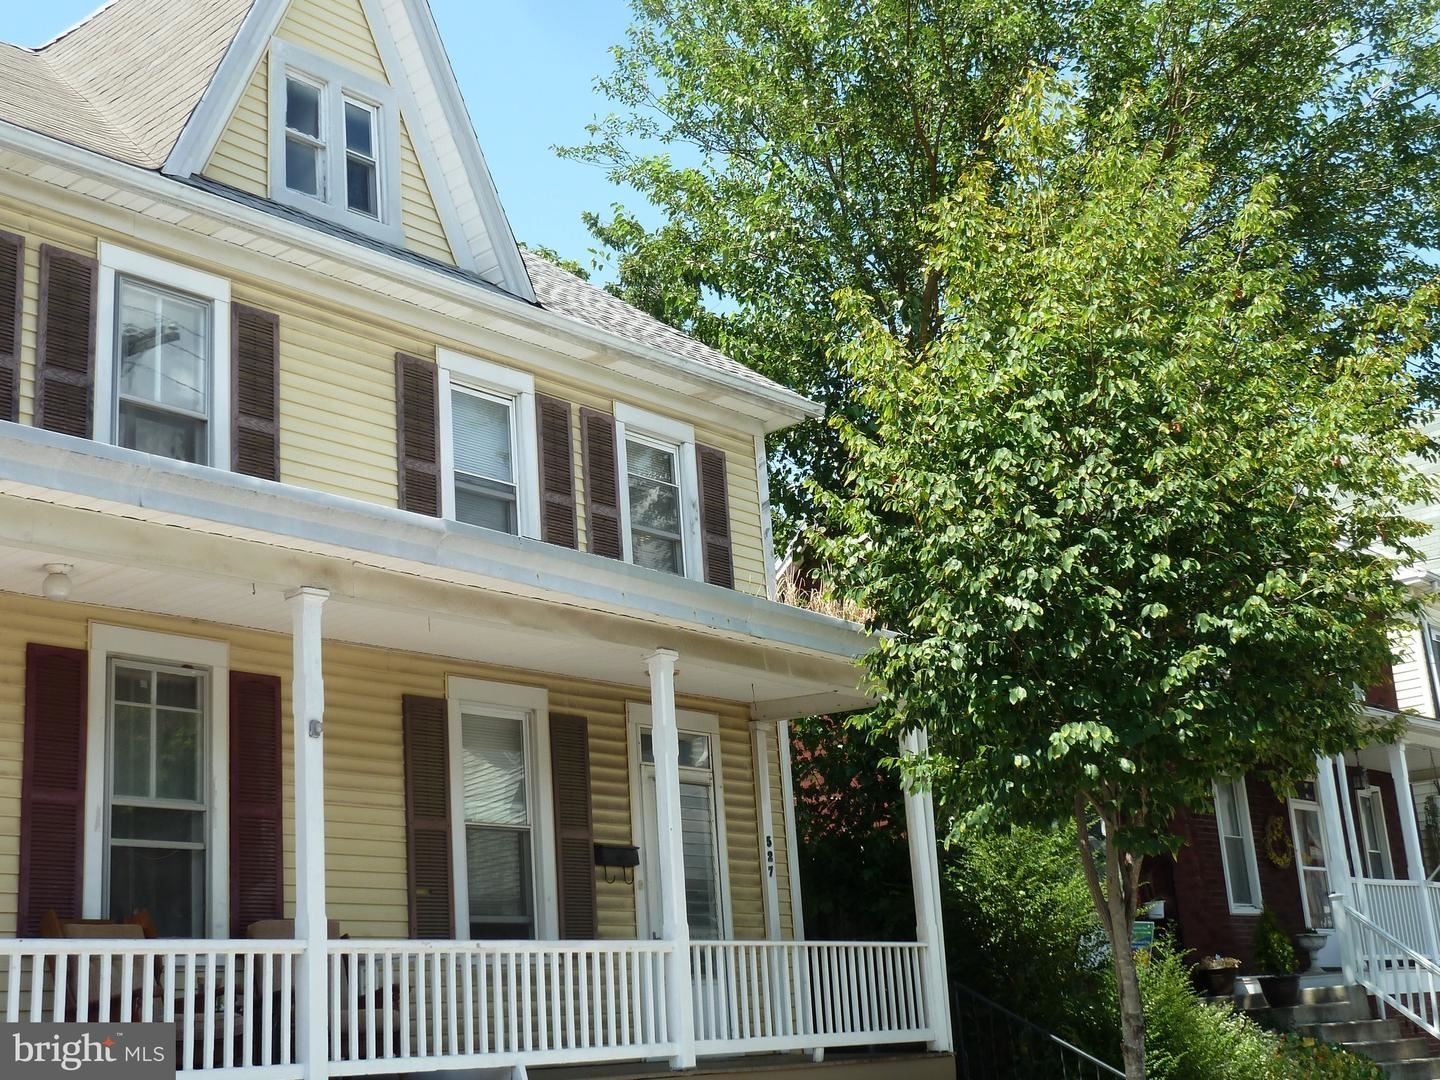 Photo of 527 N MULBERRY ST, HAGERSTOWN, MD 21740 (MLS # MDWA2000752)